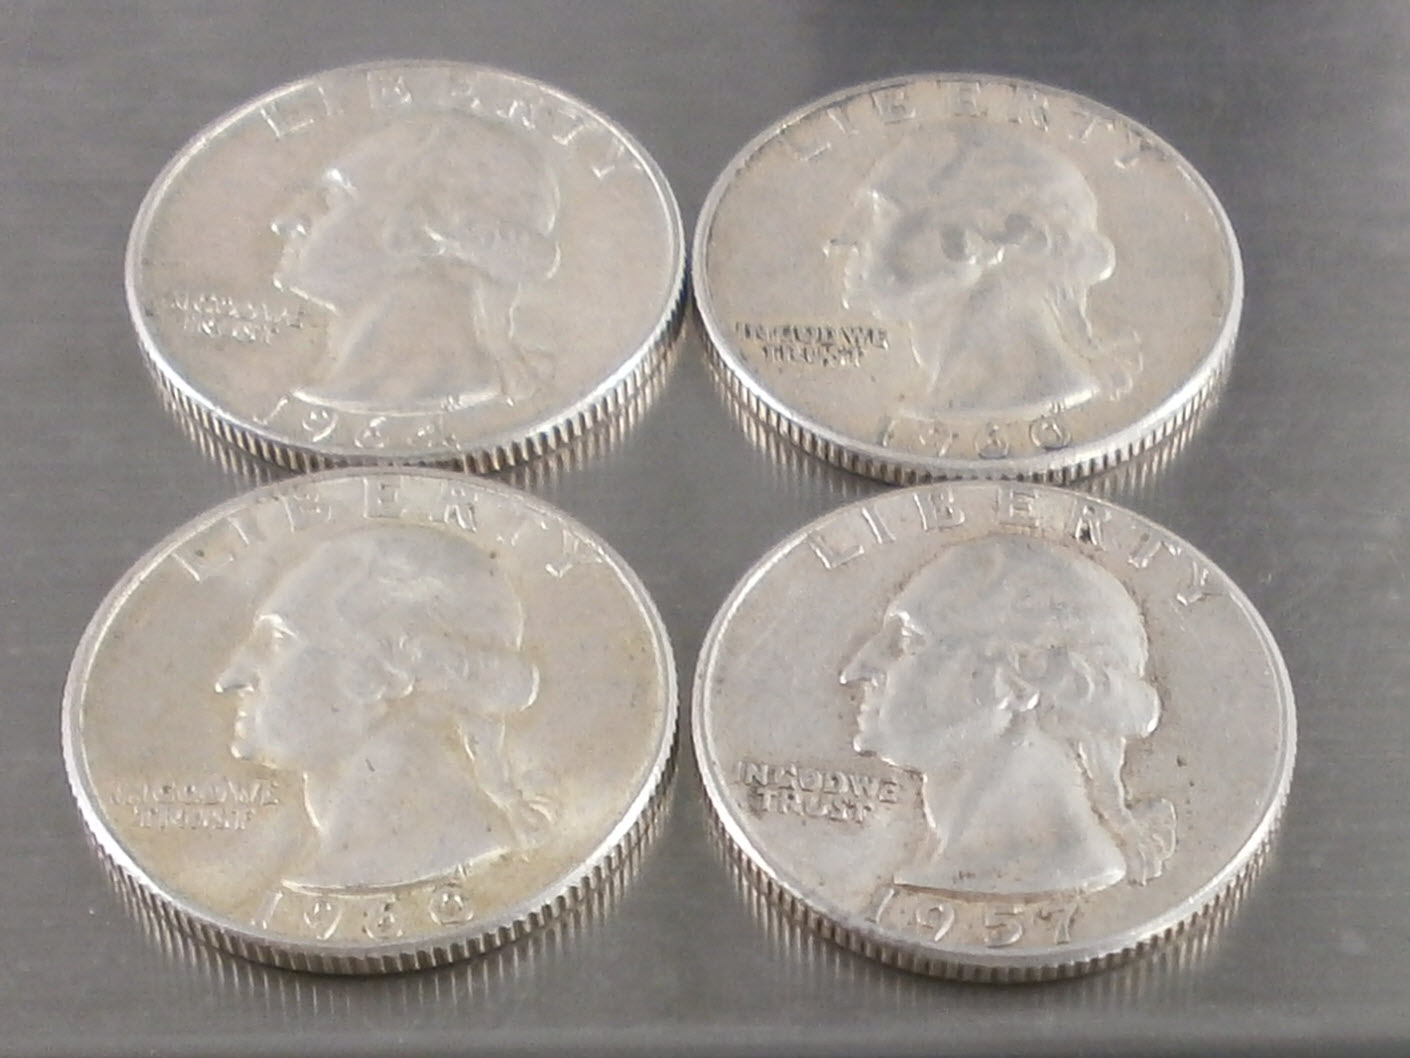 Silver Coins - Silver Quarters - Portland Gold Buyers